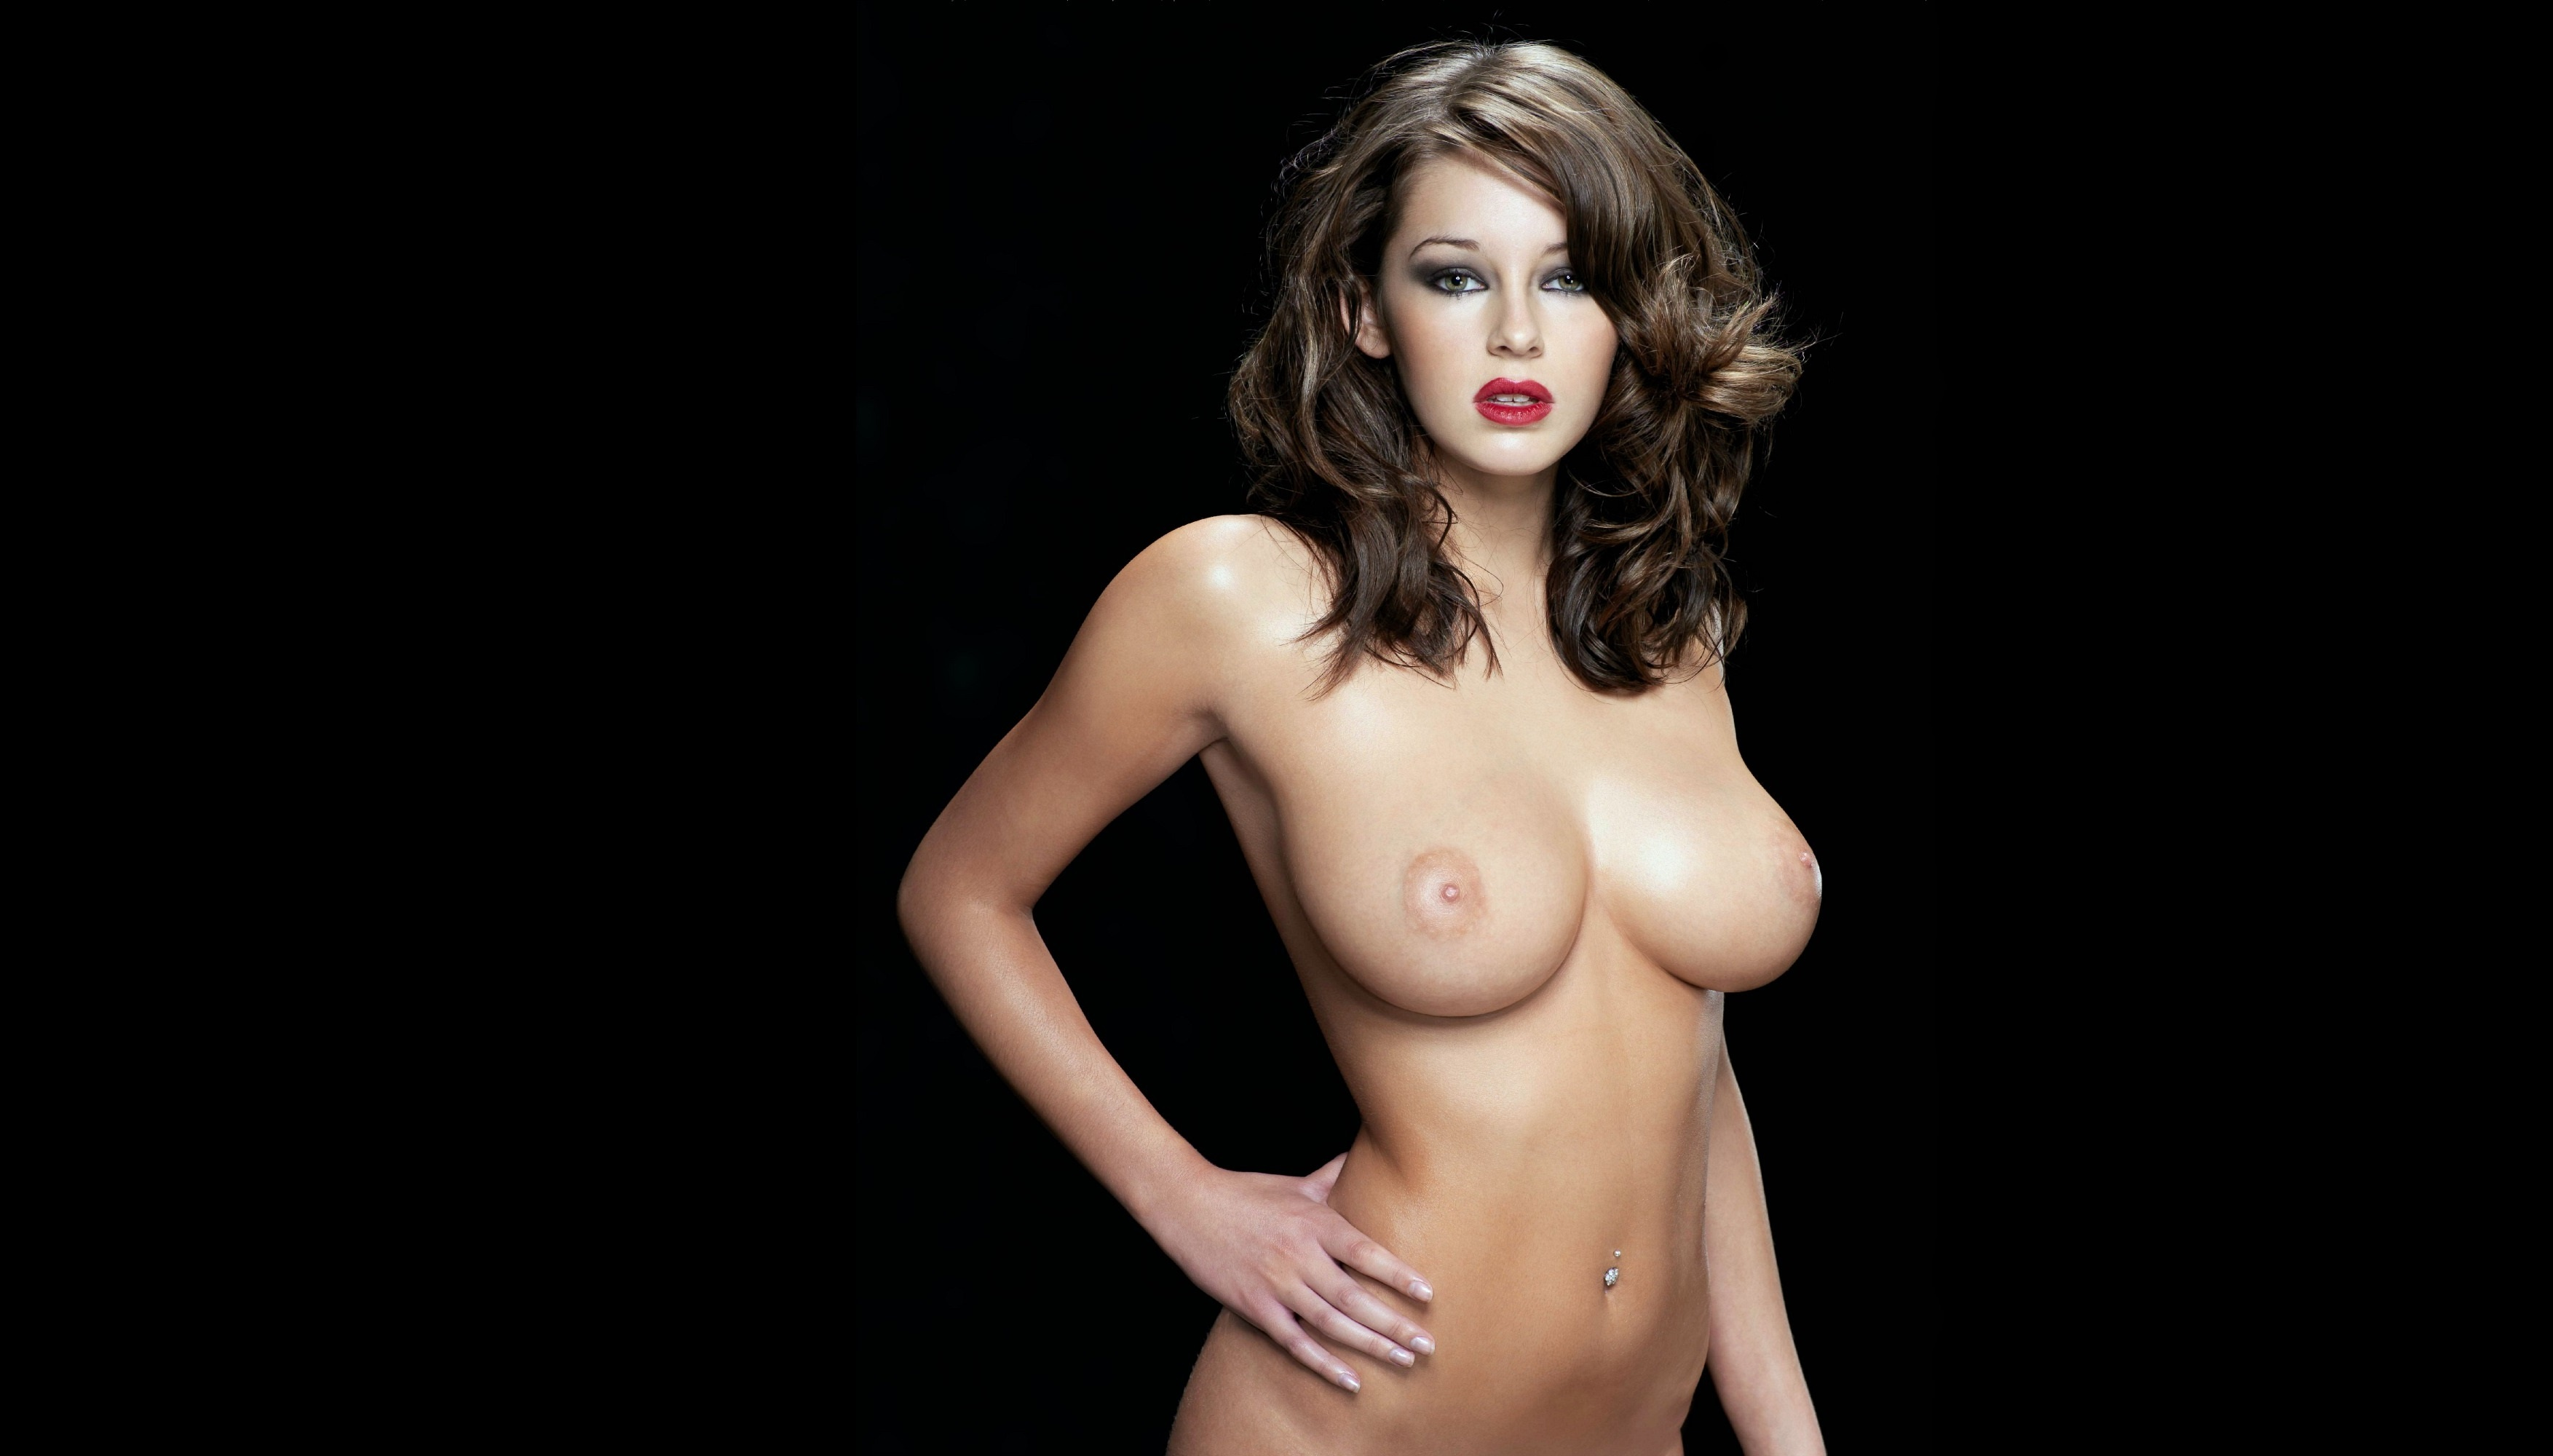 Are Hd glamour models nude think